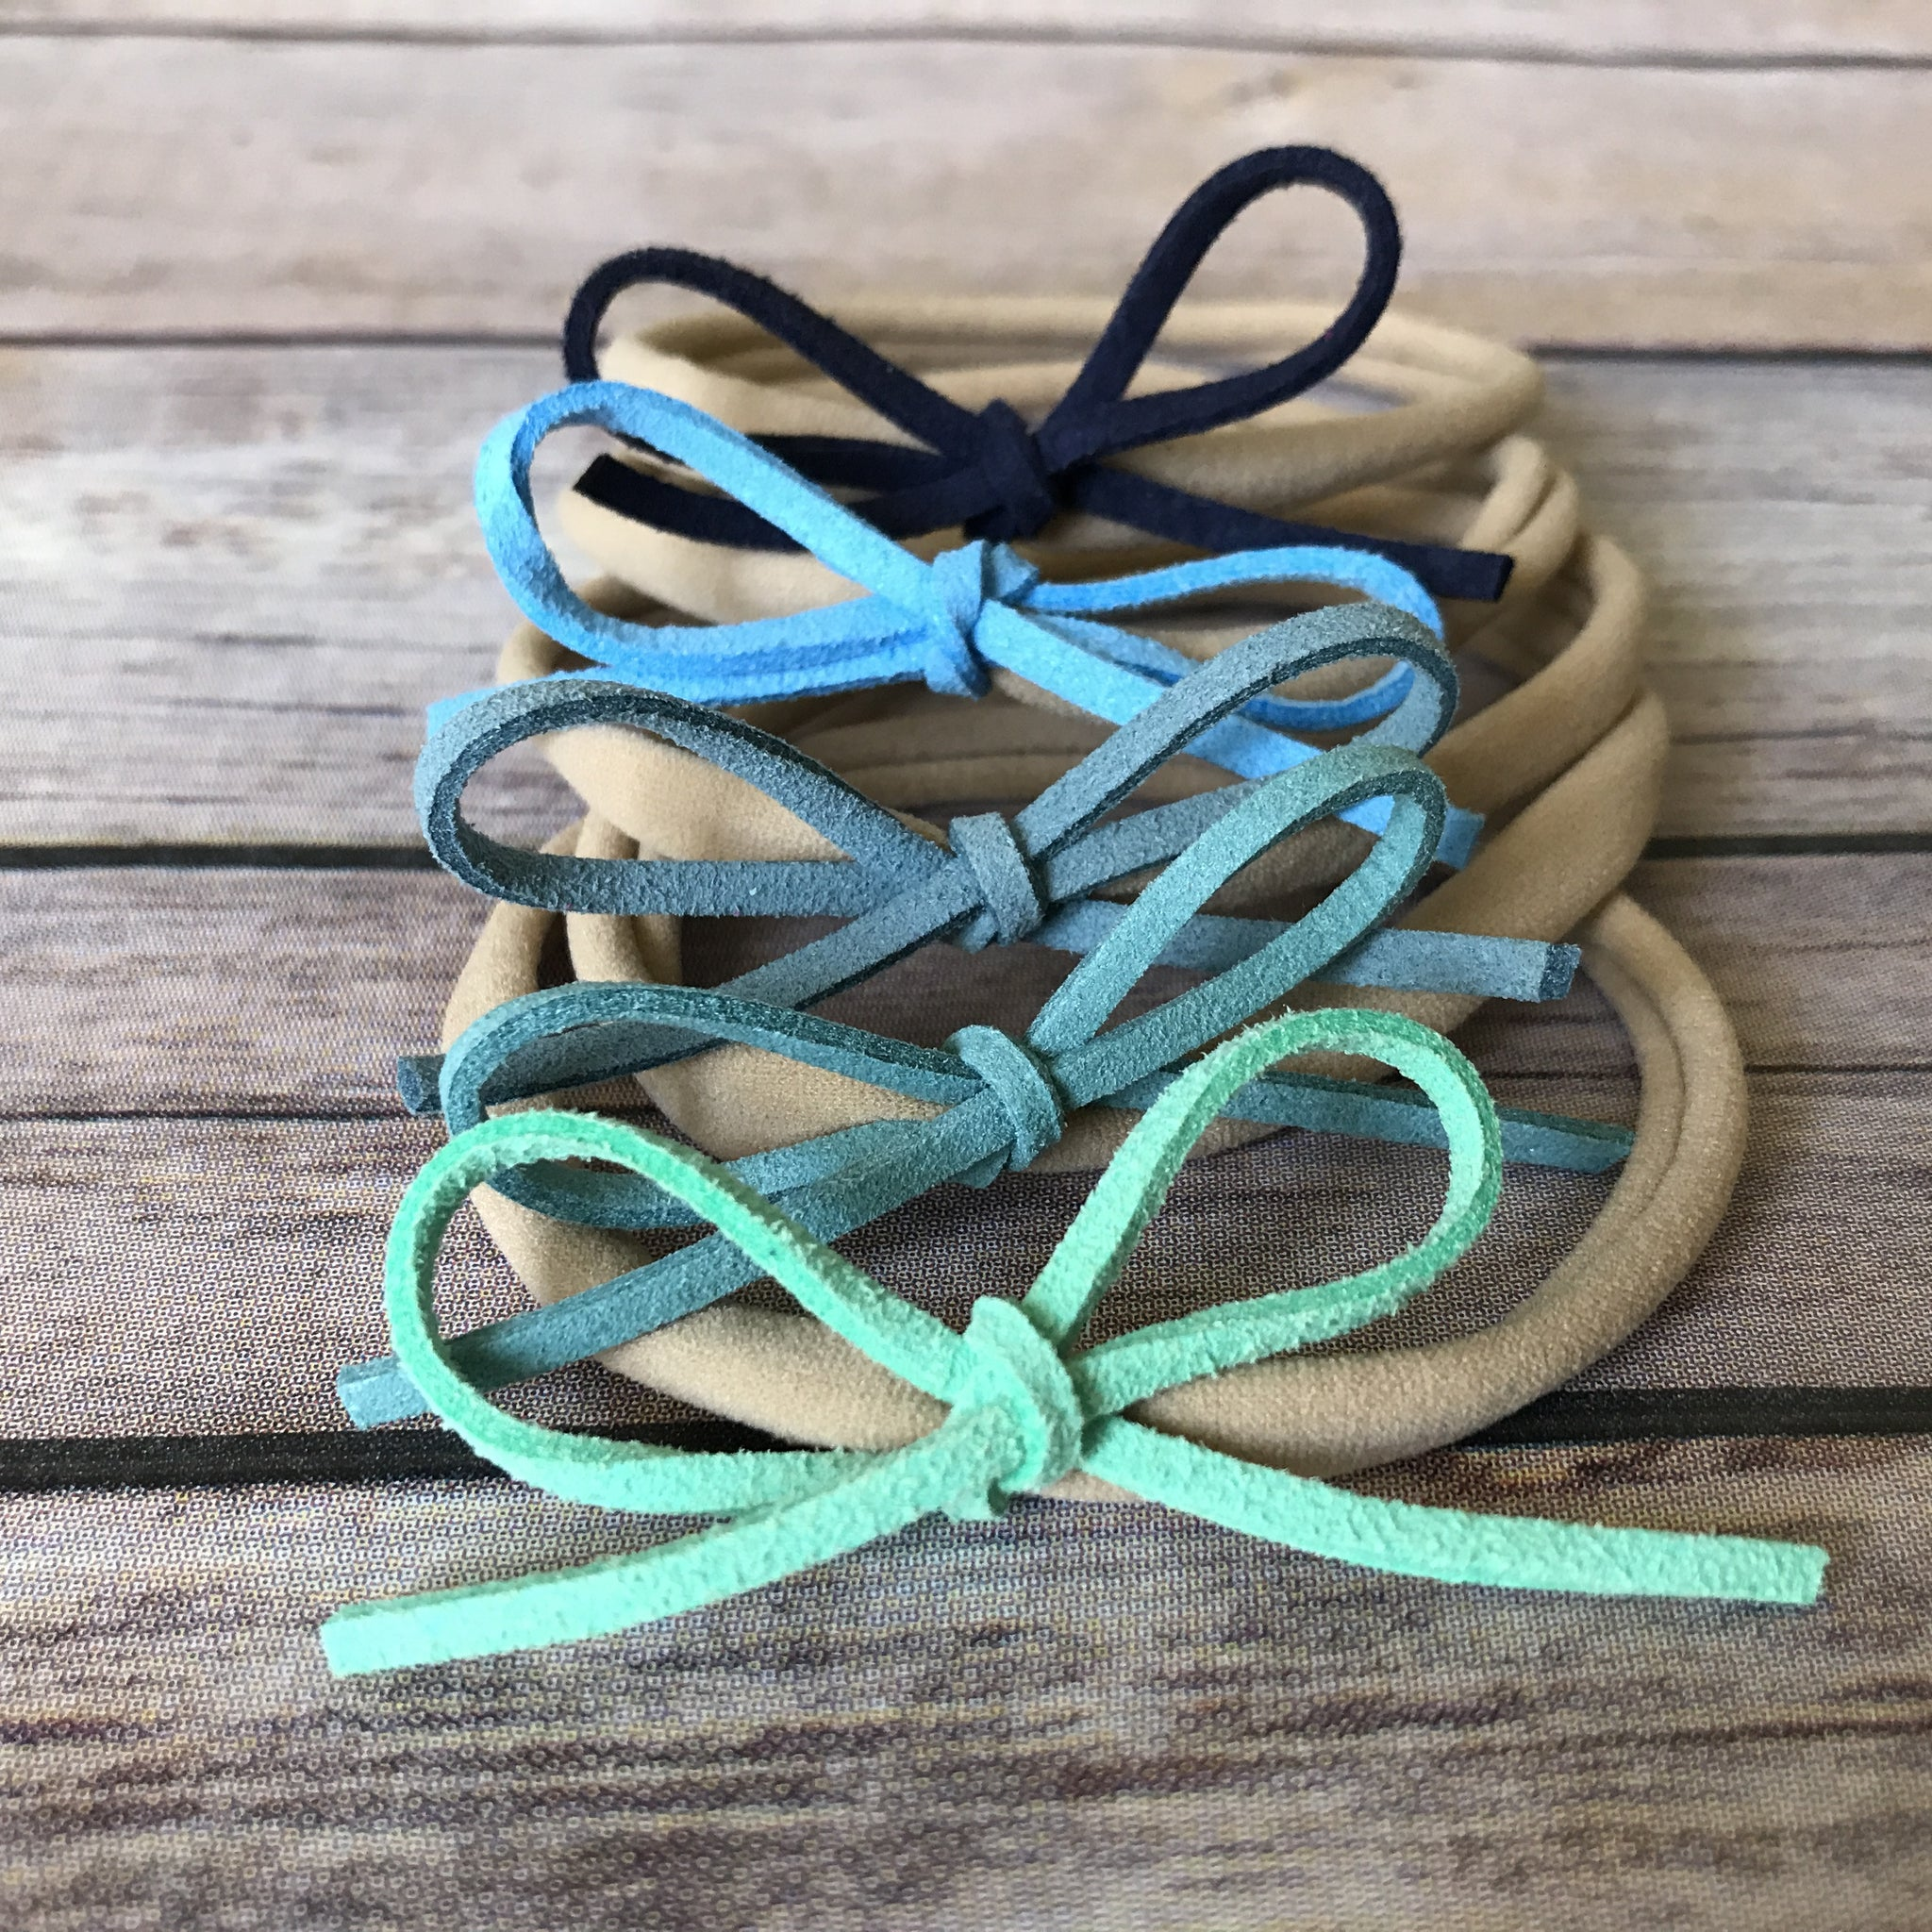 Blues Set of 5 Petite Suede Bow Headbands - Snuggle Up Buttercups